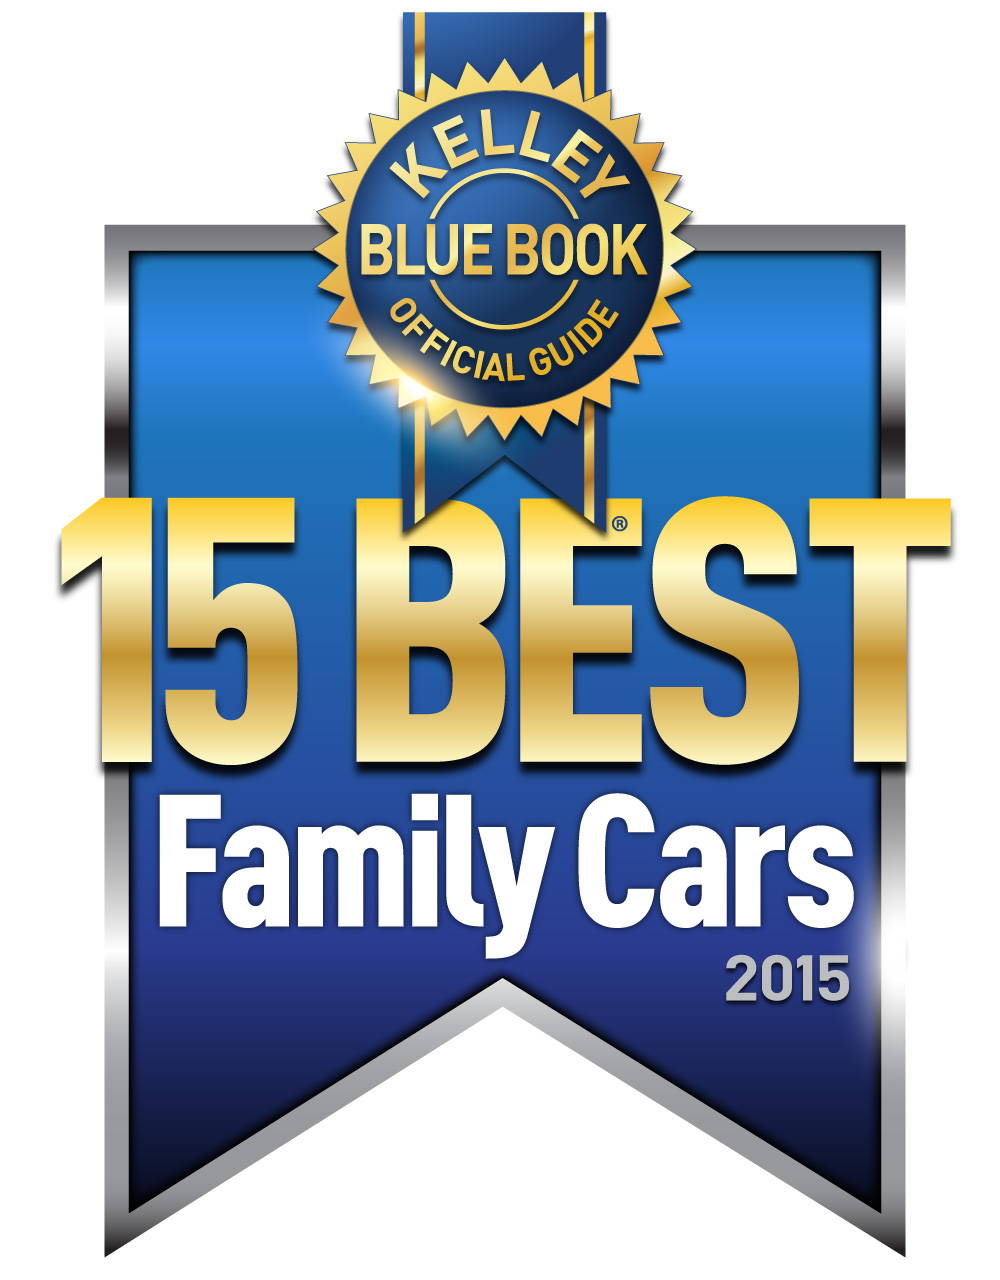 15 Best Opi Nail Polish Shades And Swatches: KELLEY BLUE BOOK NAMES 15 BEST FAMILY CARS OF 2015